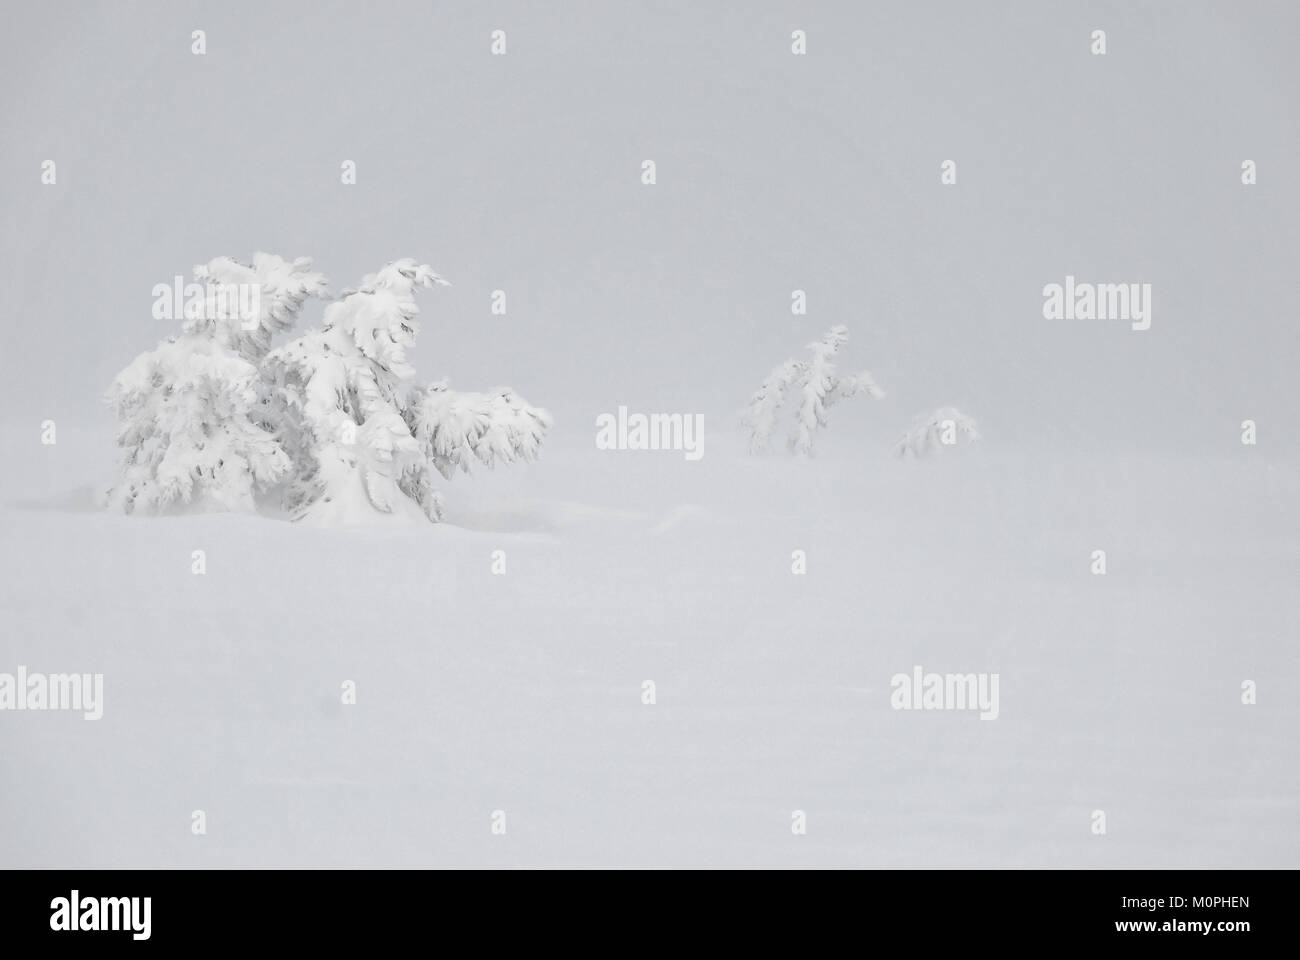 Stunted spruces covered with snow during a snowstorm - Stock Image